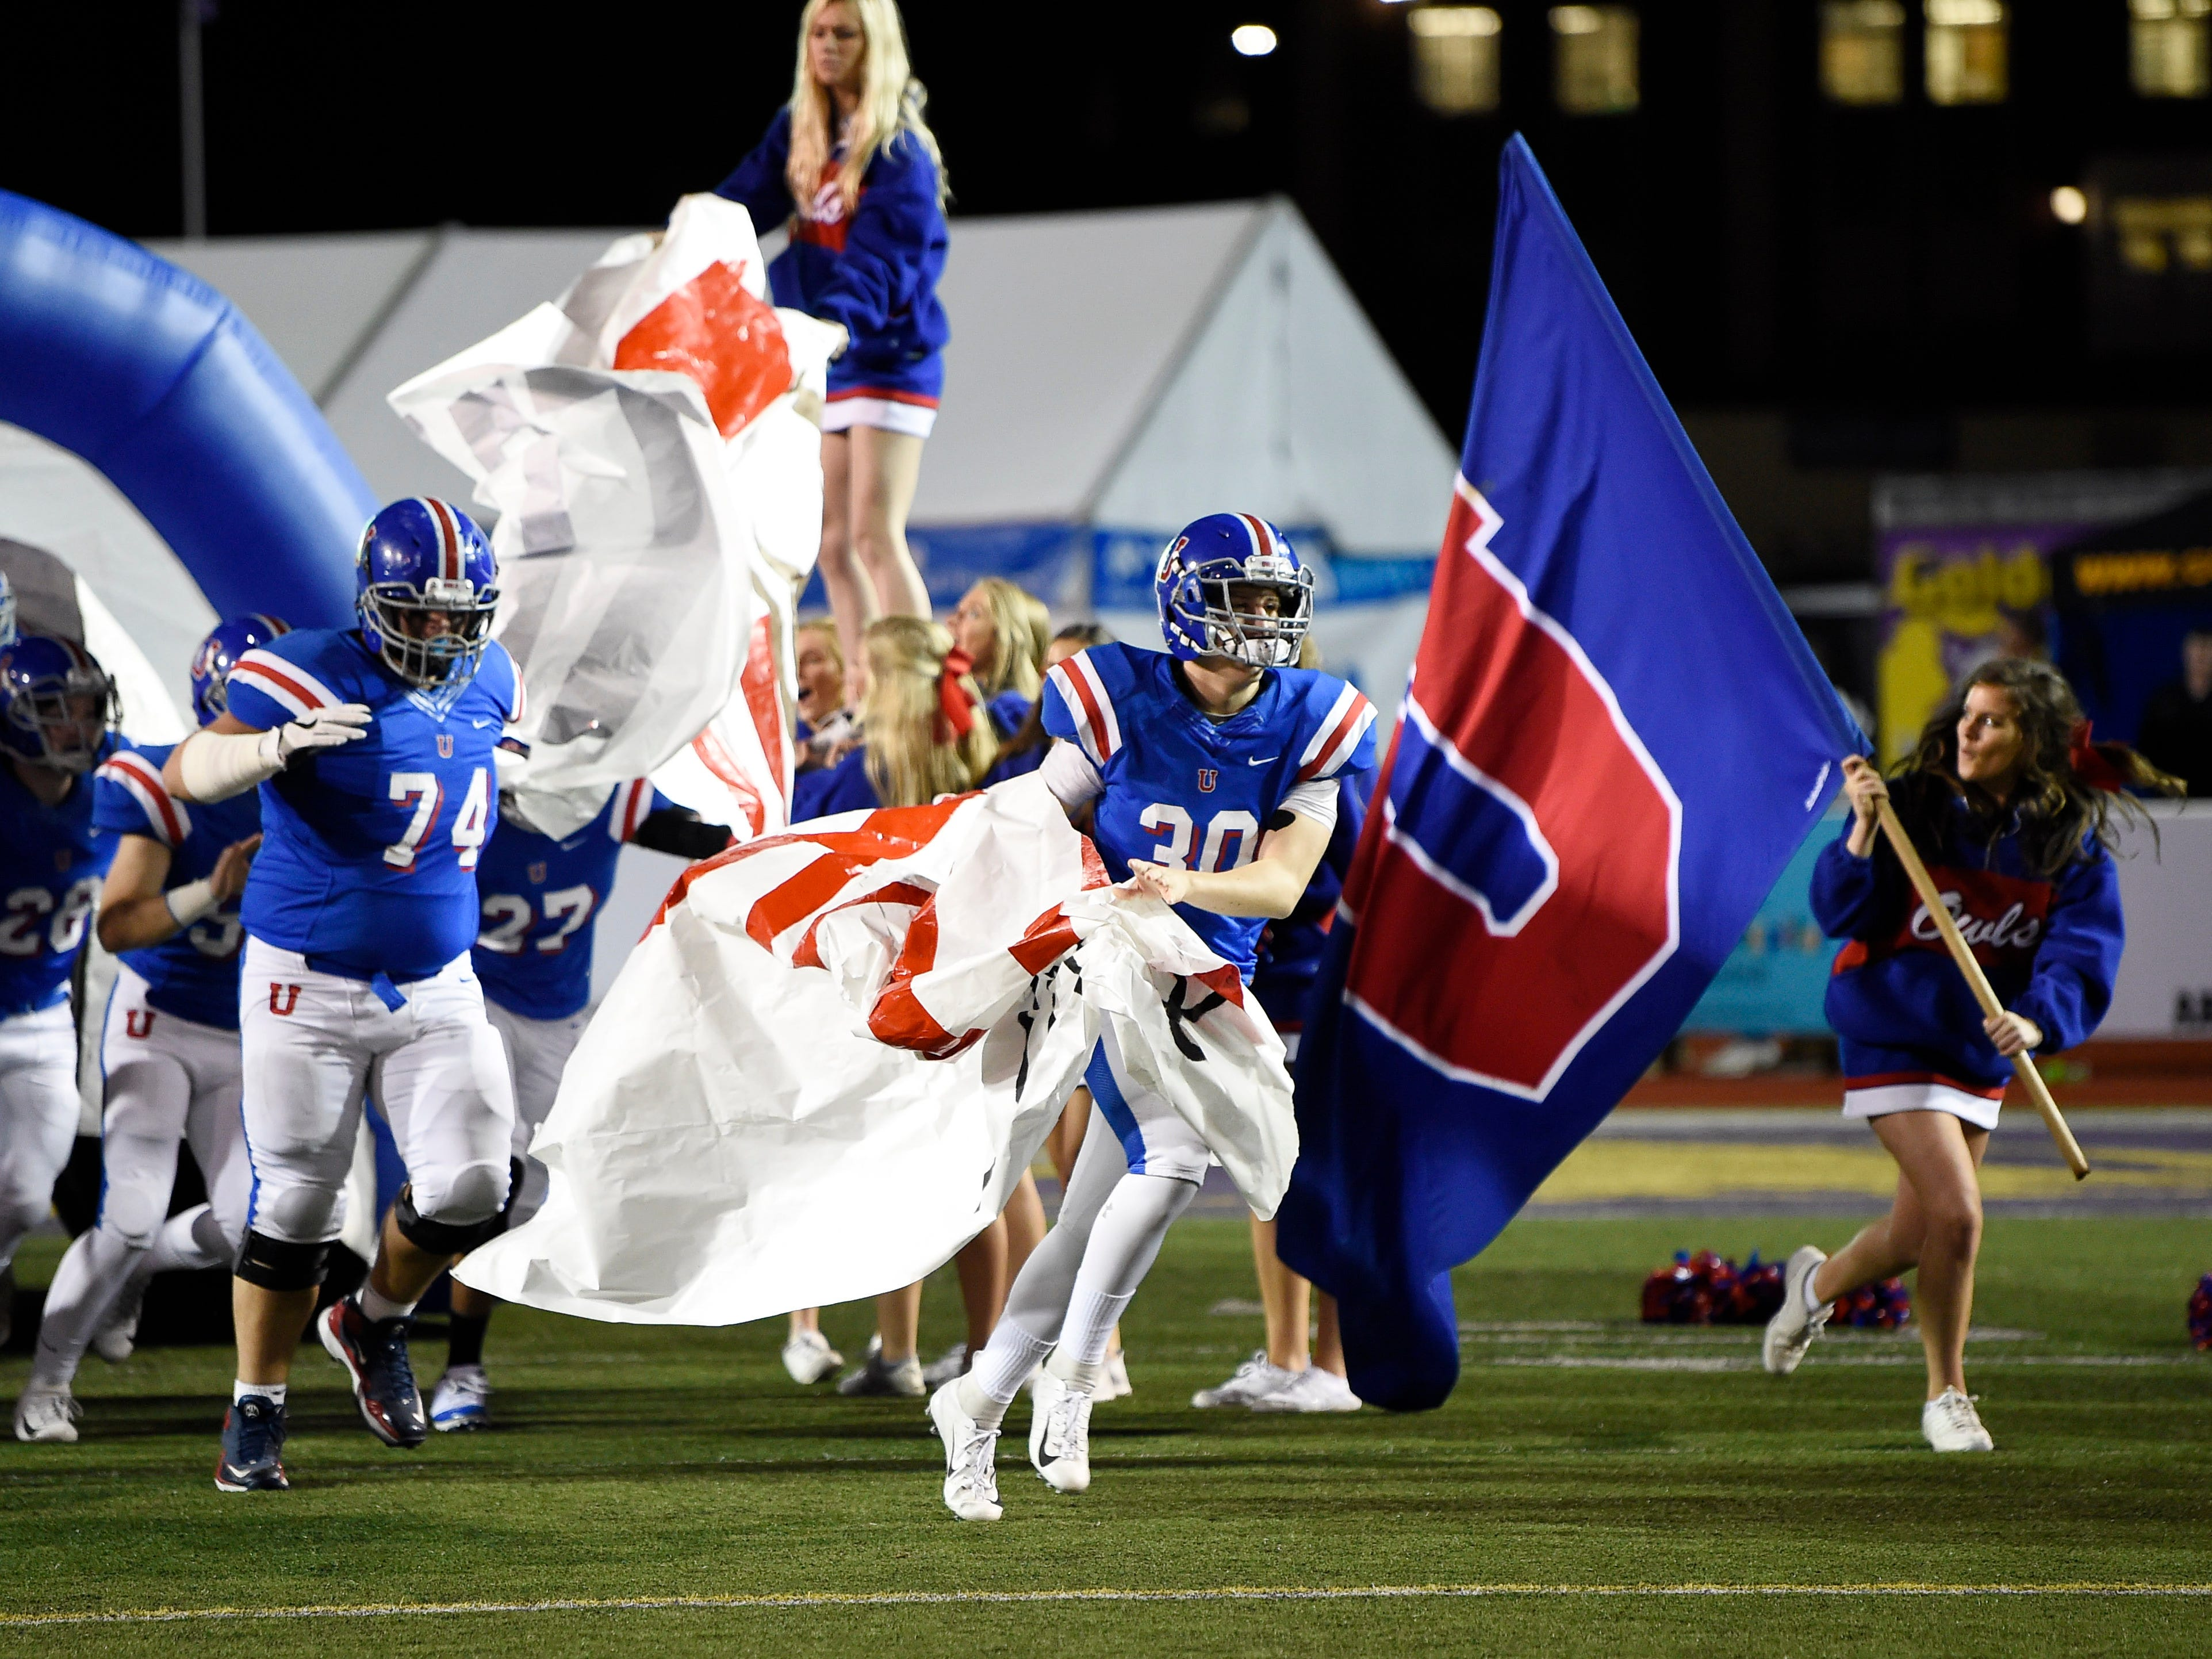 MUS players take the field for the Division II-AAA BlueCross Bowl state championship at Tennessee Tech's Tucker Stadium in Cookeville, Tenn., on Friday, Nov. 30, 2018.